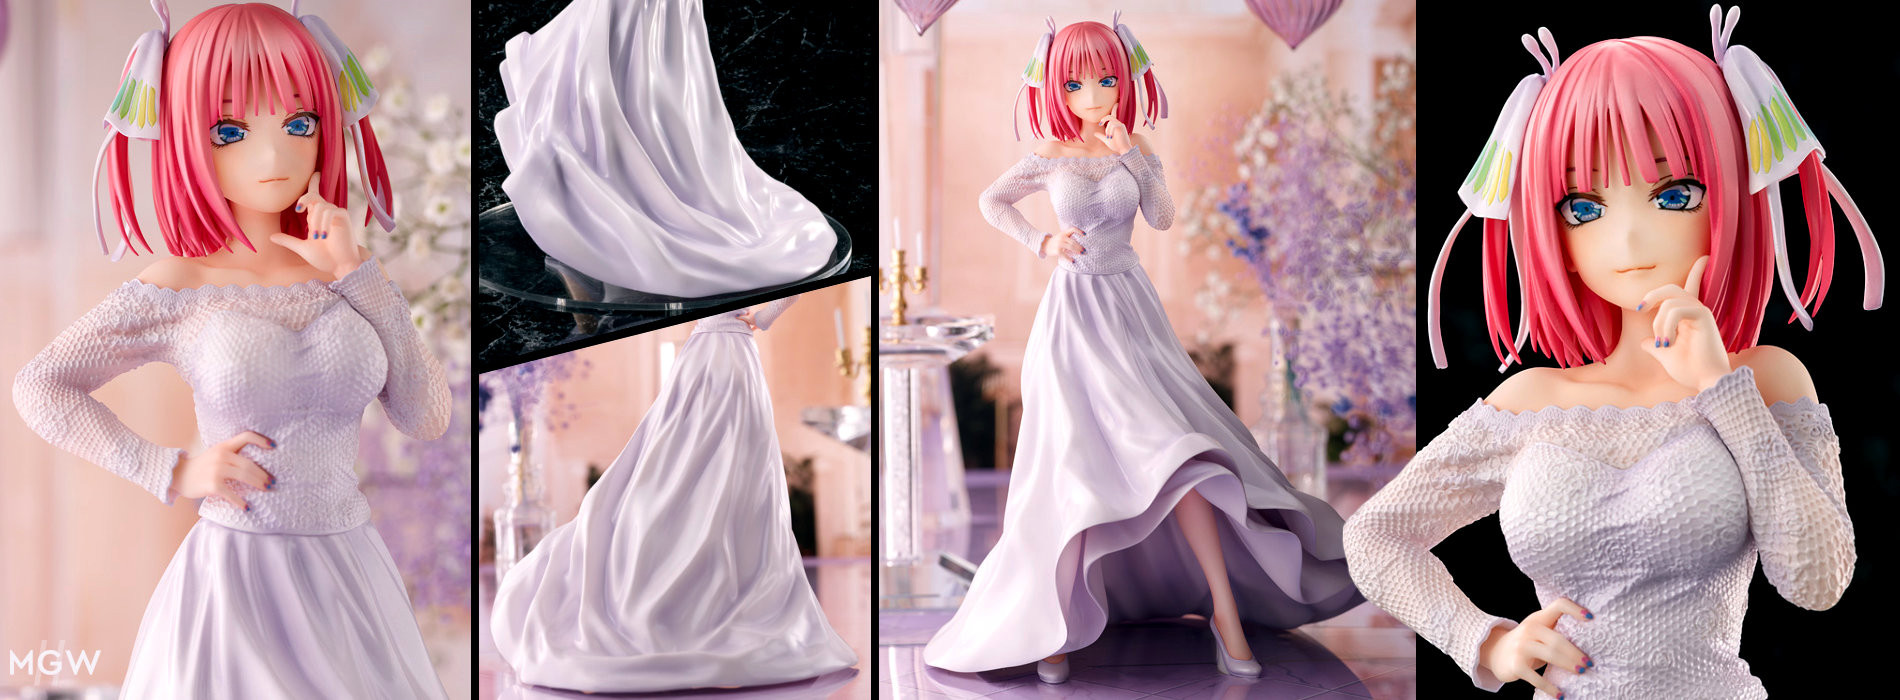 Nakano Nino Wedding Ver. by AMAKUNI from The Quintessential Quintuplets MyGrailWatch Anime Figure Guide